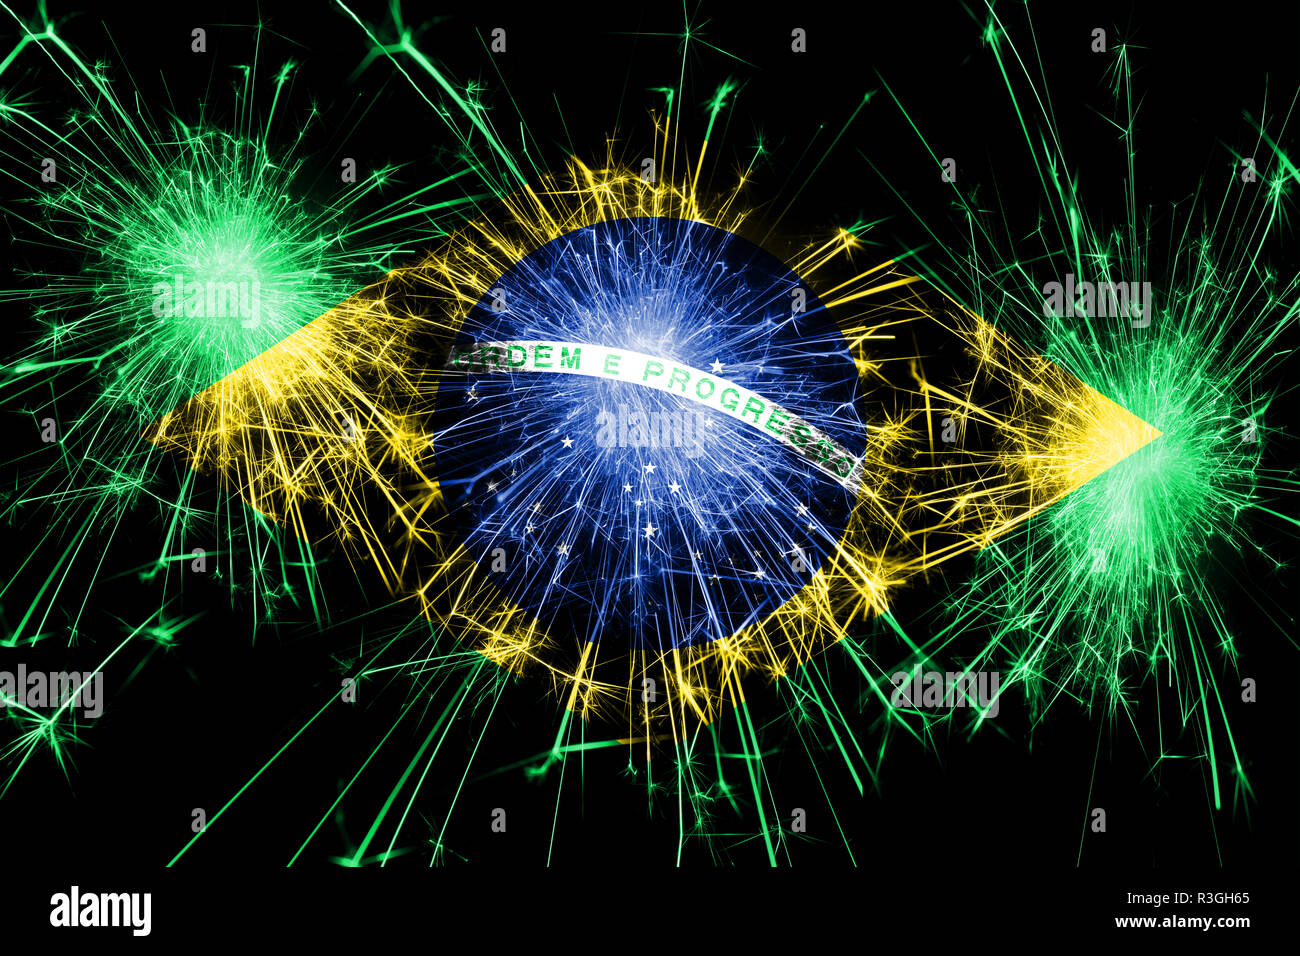 Обои flag, fireworks, football, Brasil. Спорт foto 15